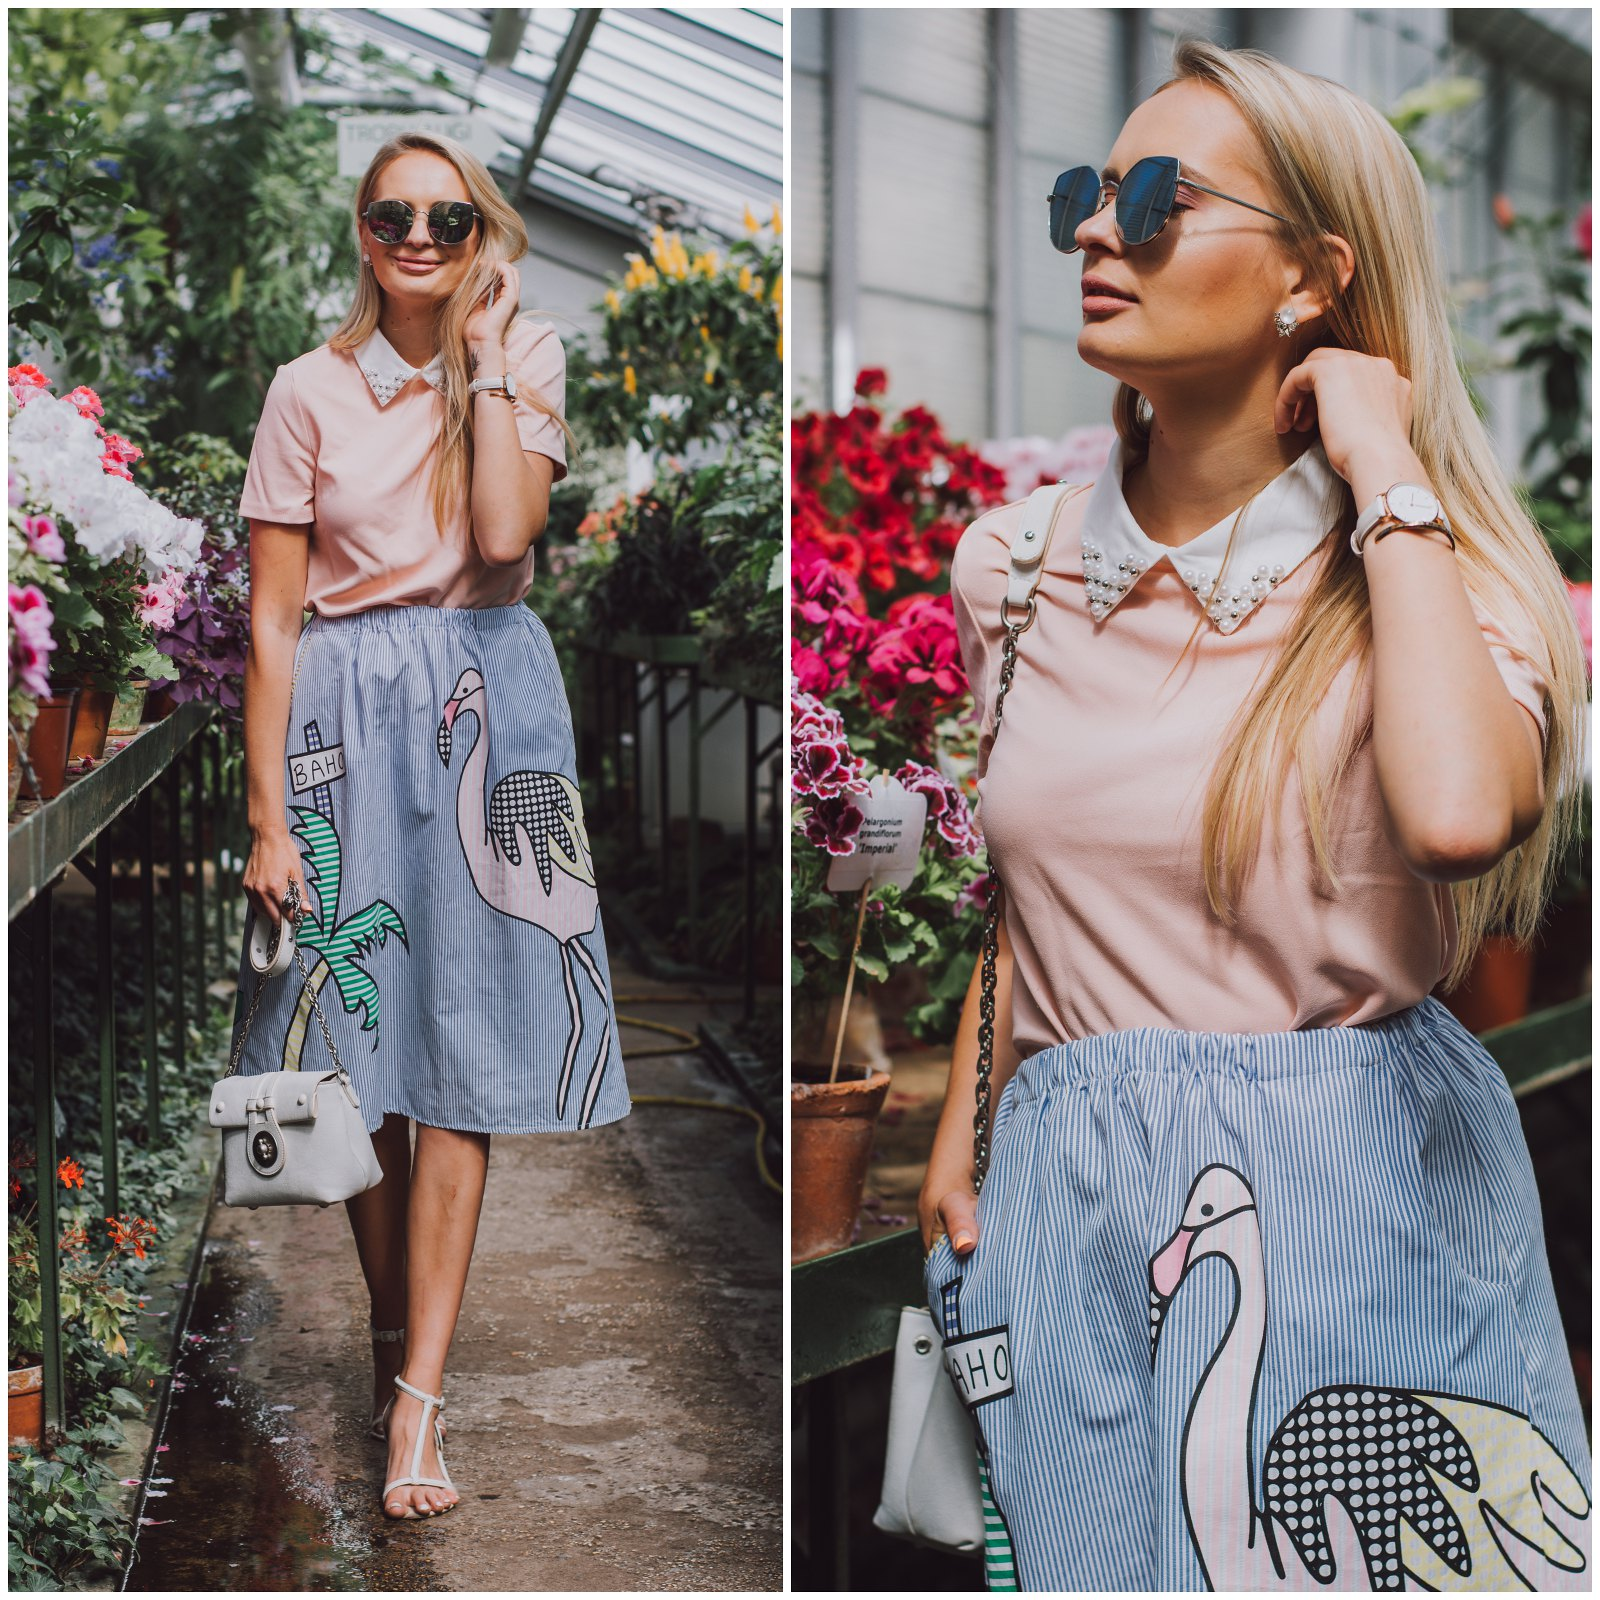 Flamingo skirt outfit